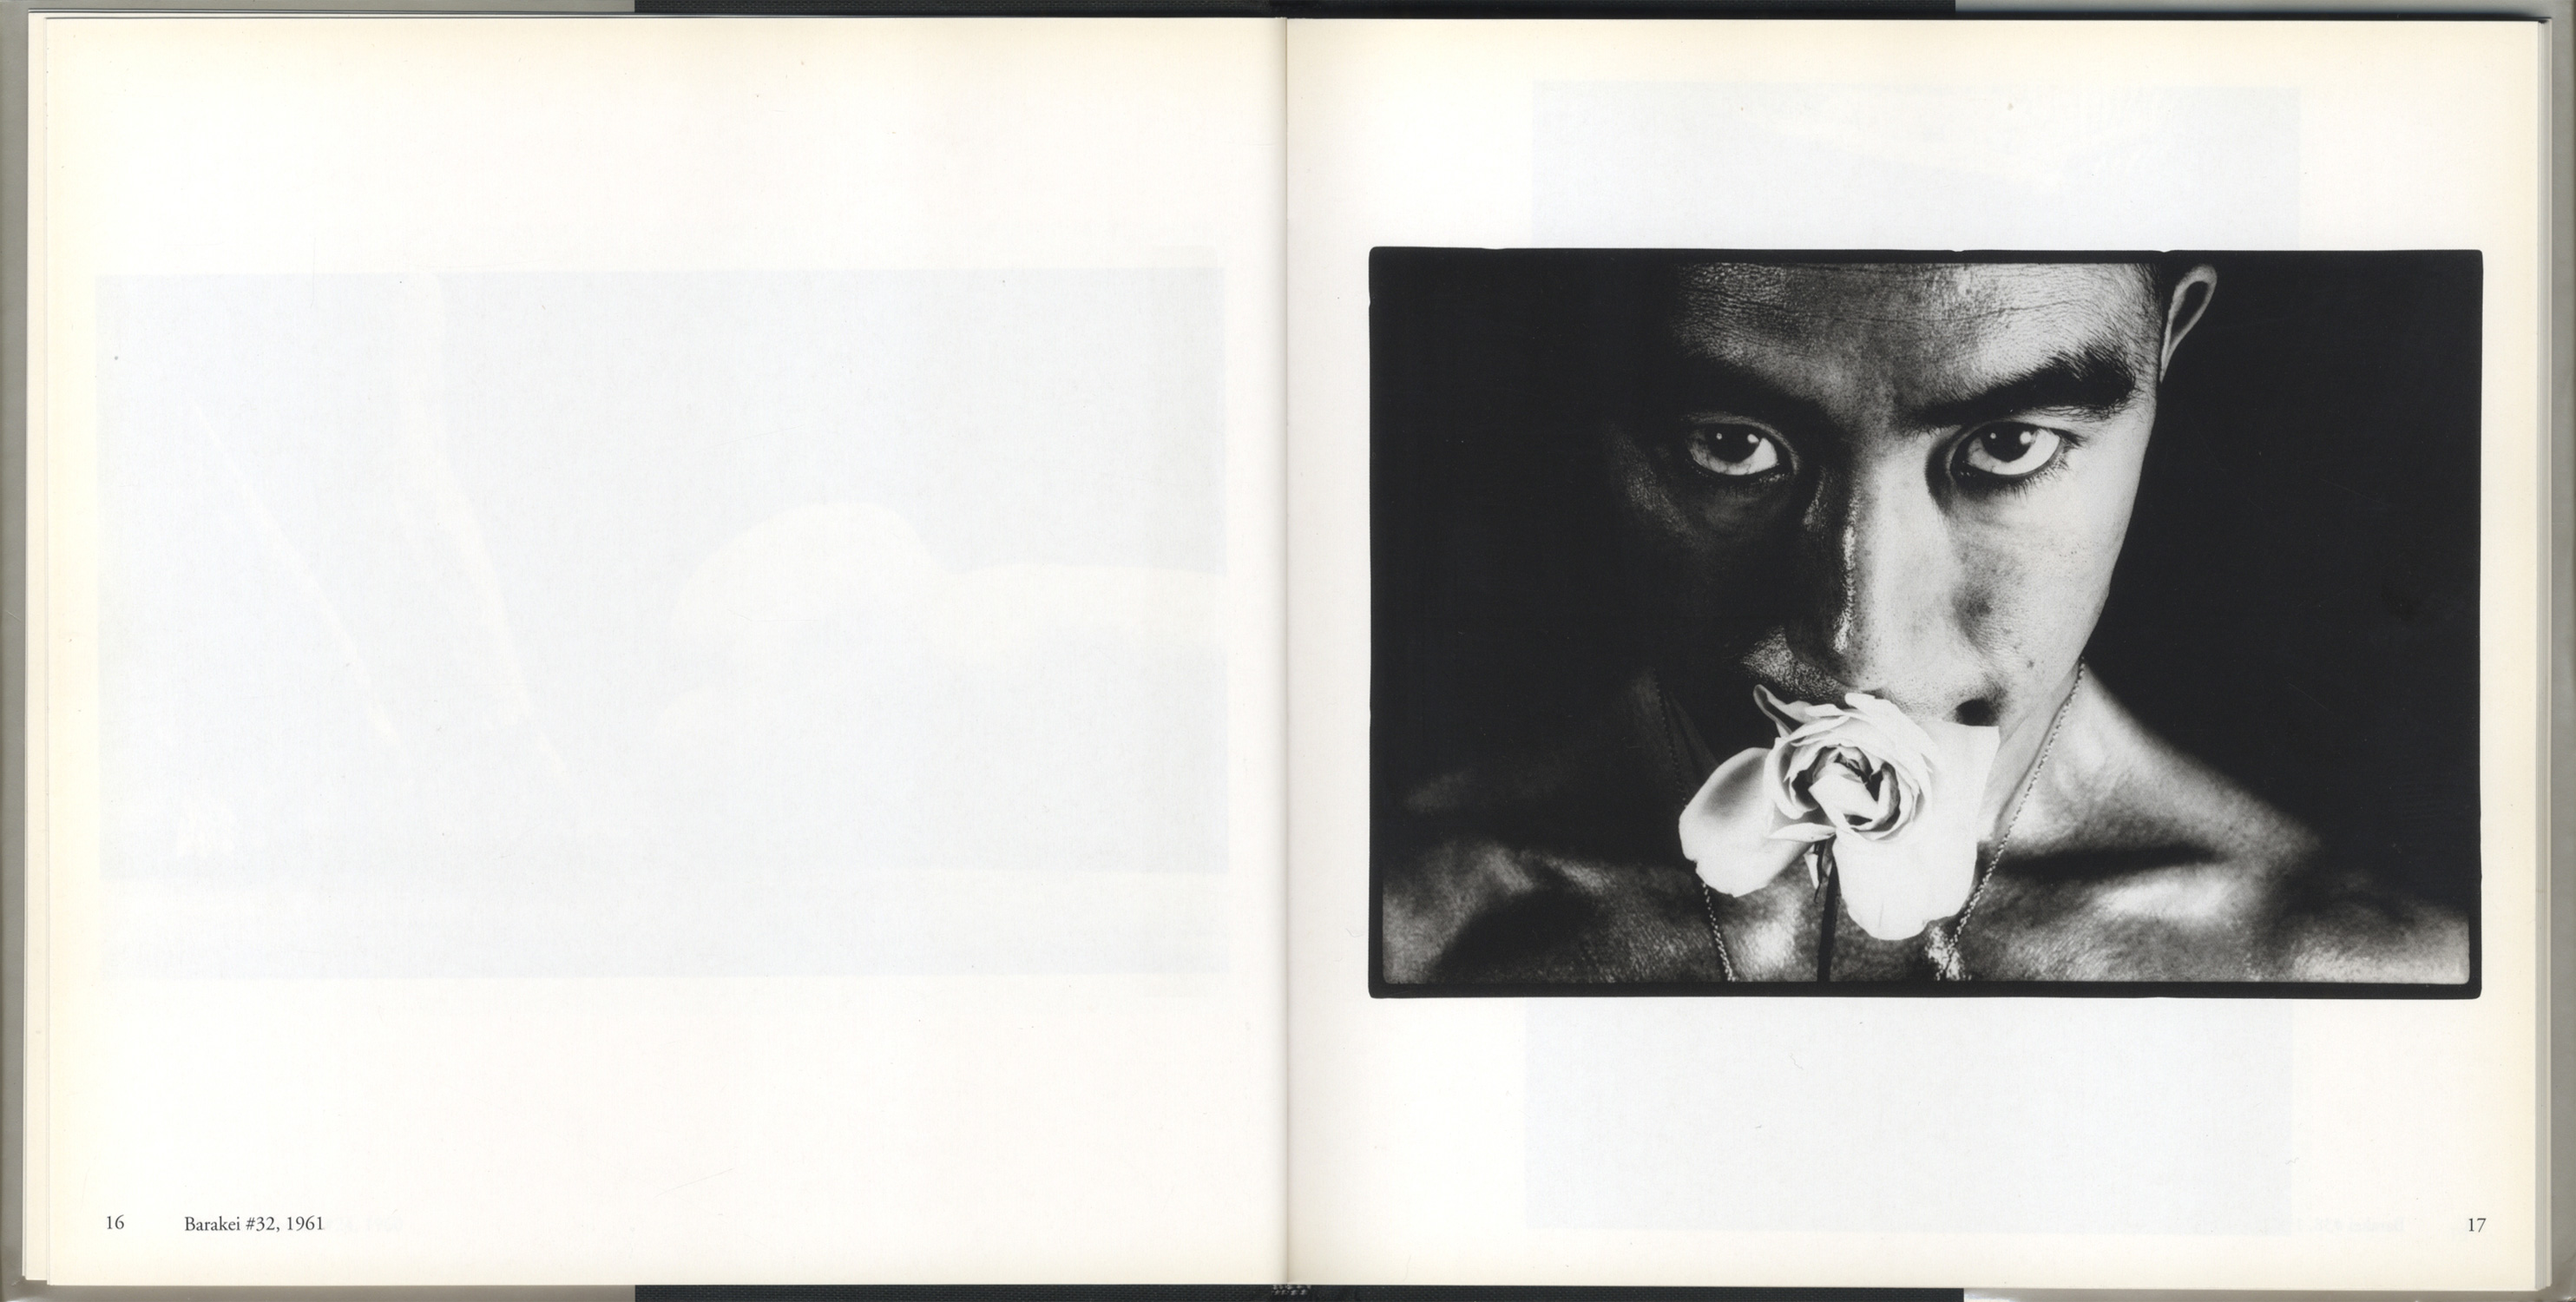 Eikoh Hosoe With an Essy by Mark Holborn[image2]